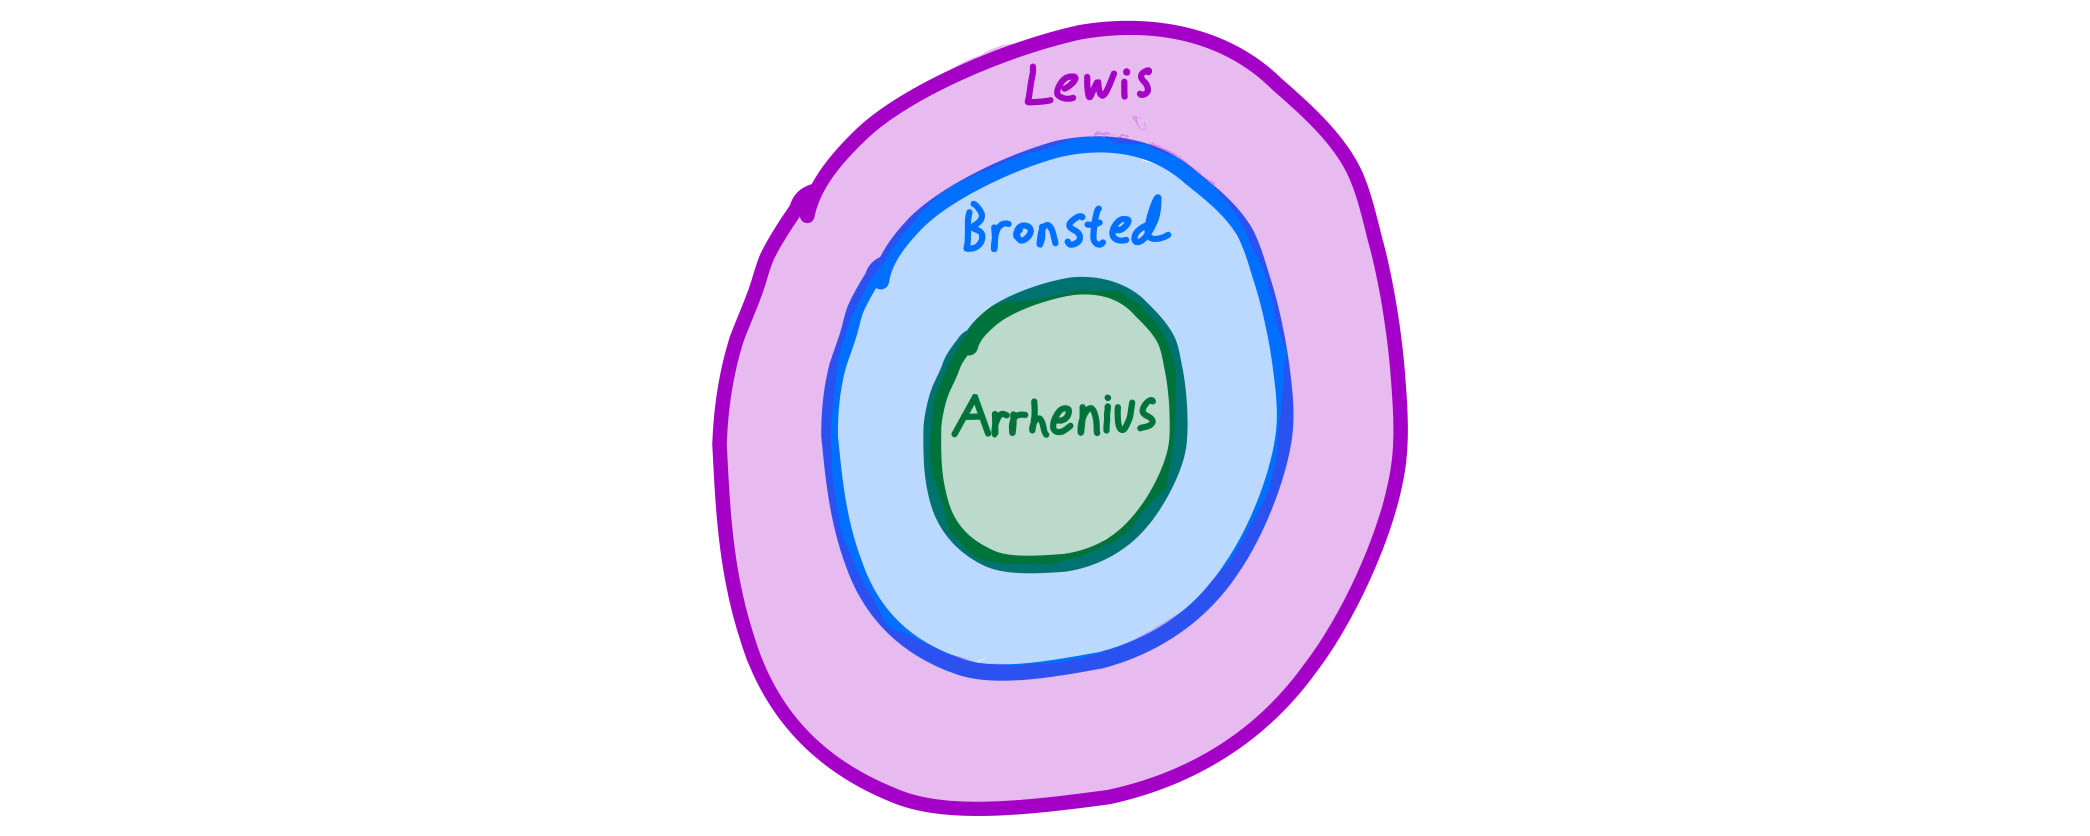 Lewis Acid vs Bronsted Acid vs Arrhenius Acid Definitions